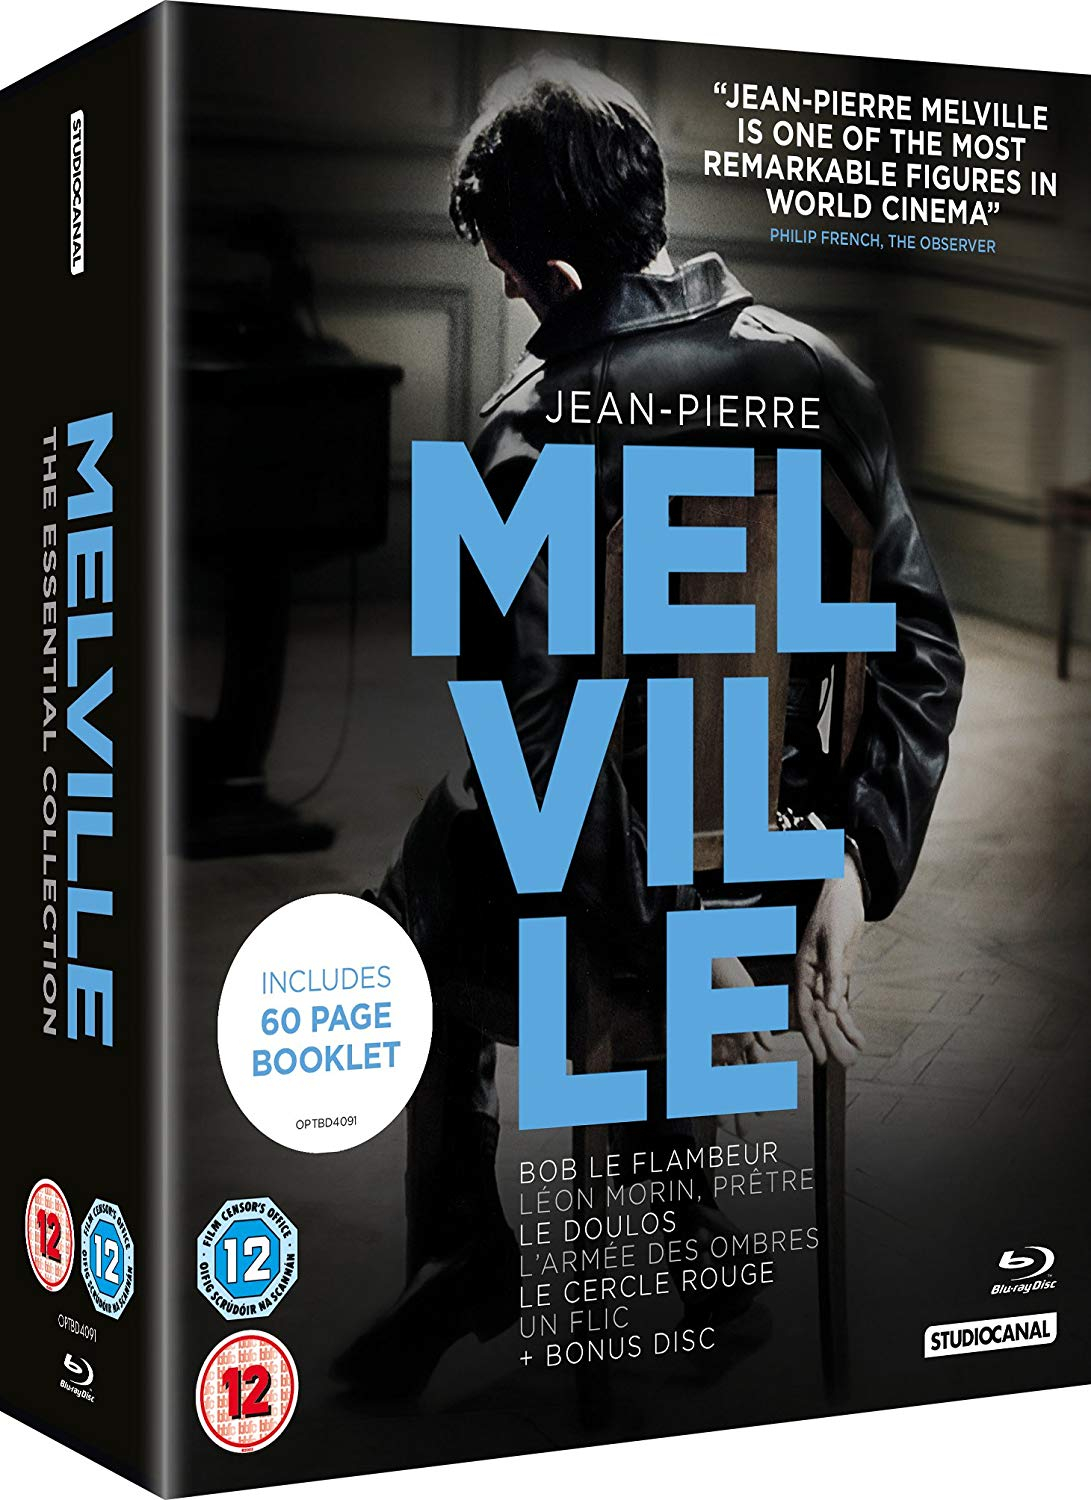 Buy Jean-Pierre Melville Collection (Blu-ray Box Set)